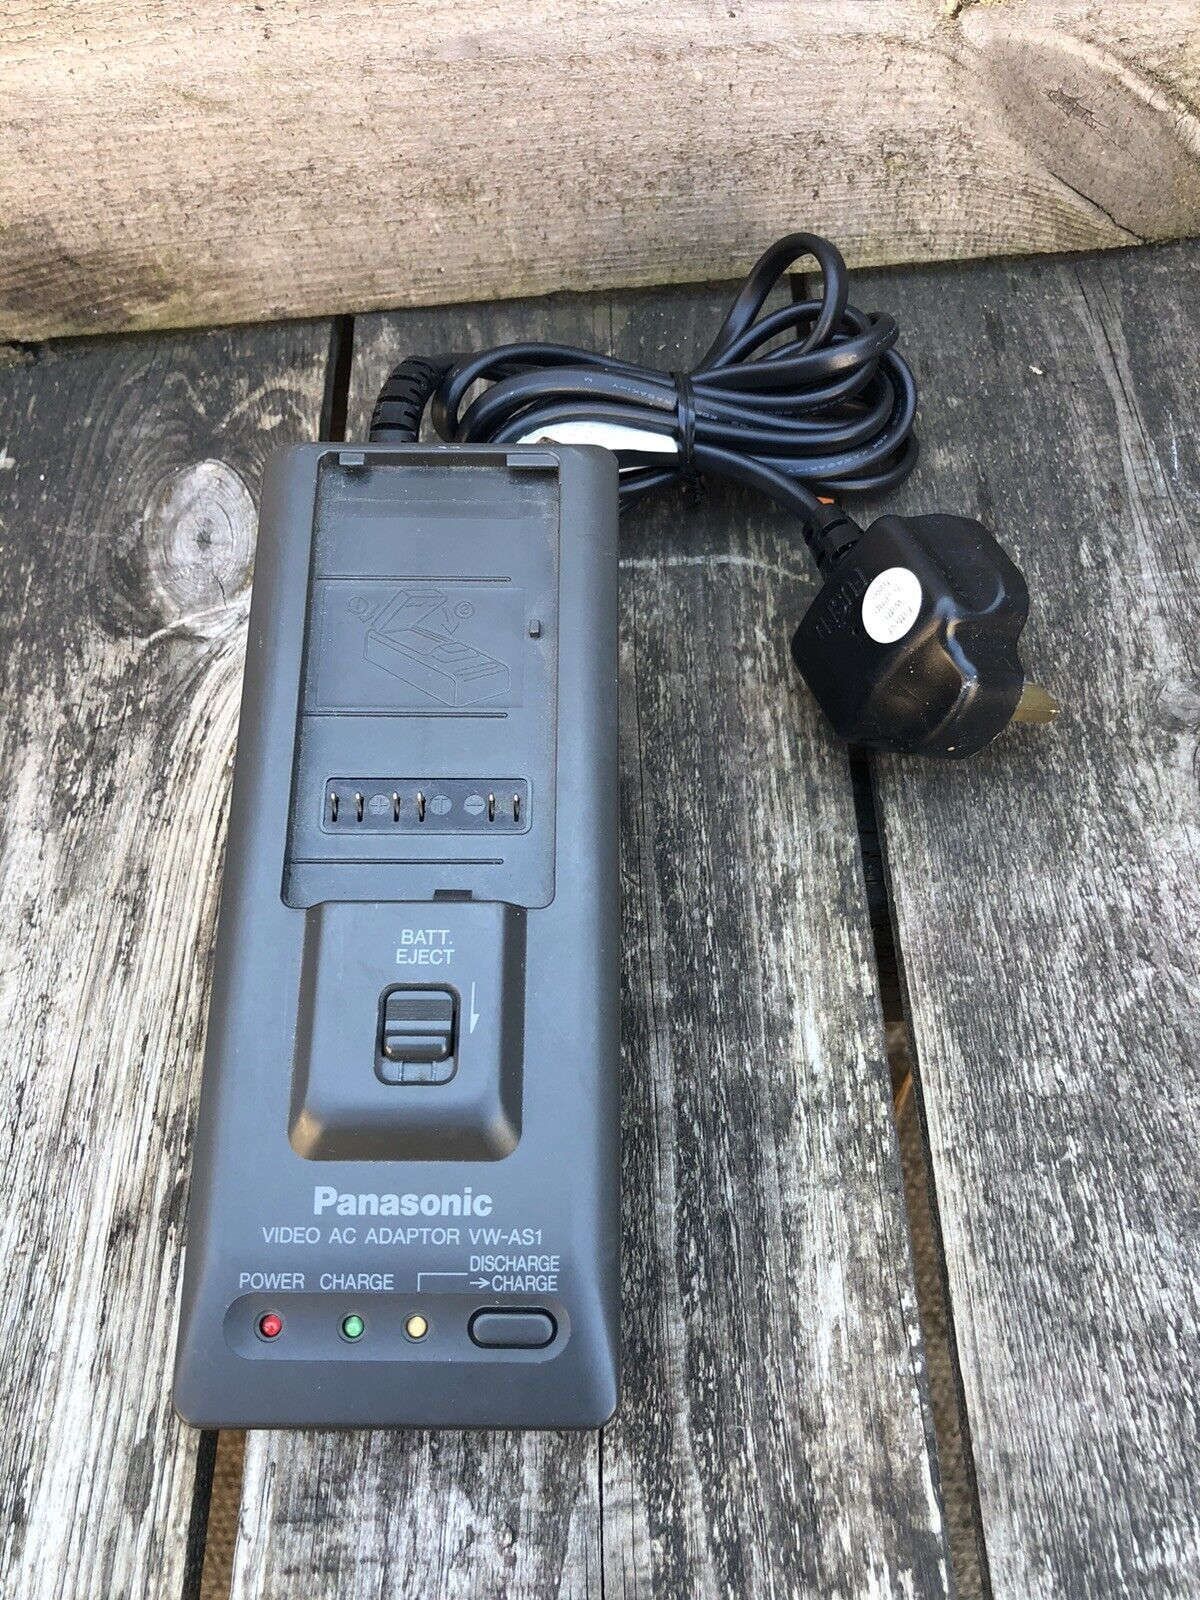 Panasonic VW-AS1B Video Camcorder Charger Adaptor - Tested & Working